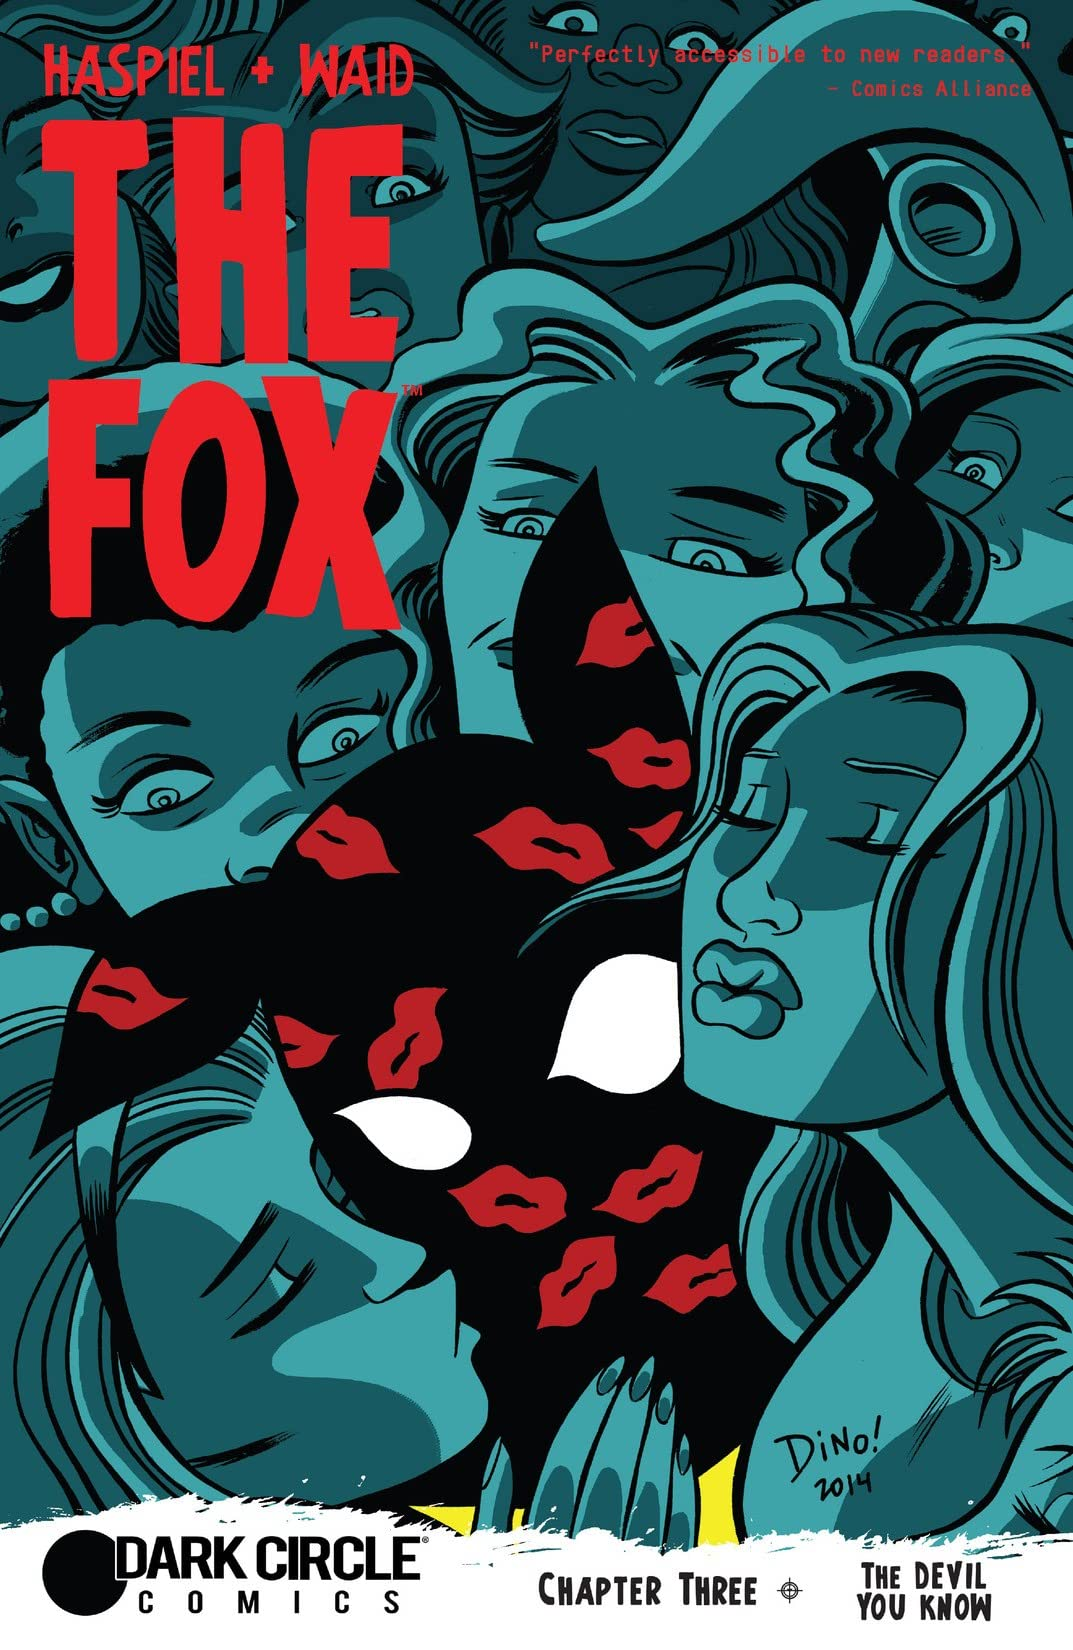 The Fox (Dark Circle Comics) #3